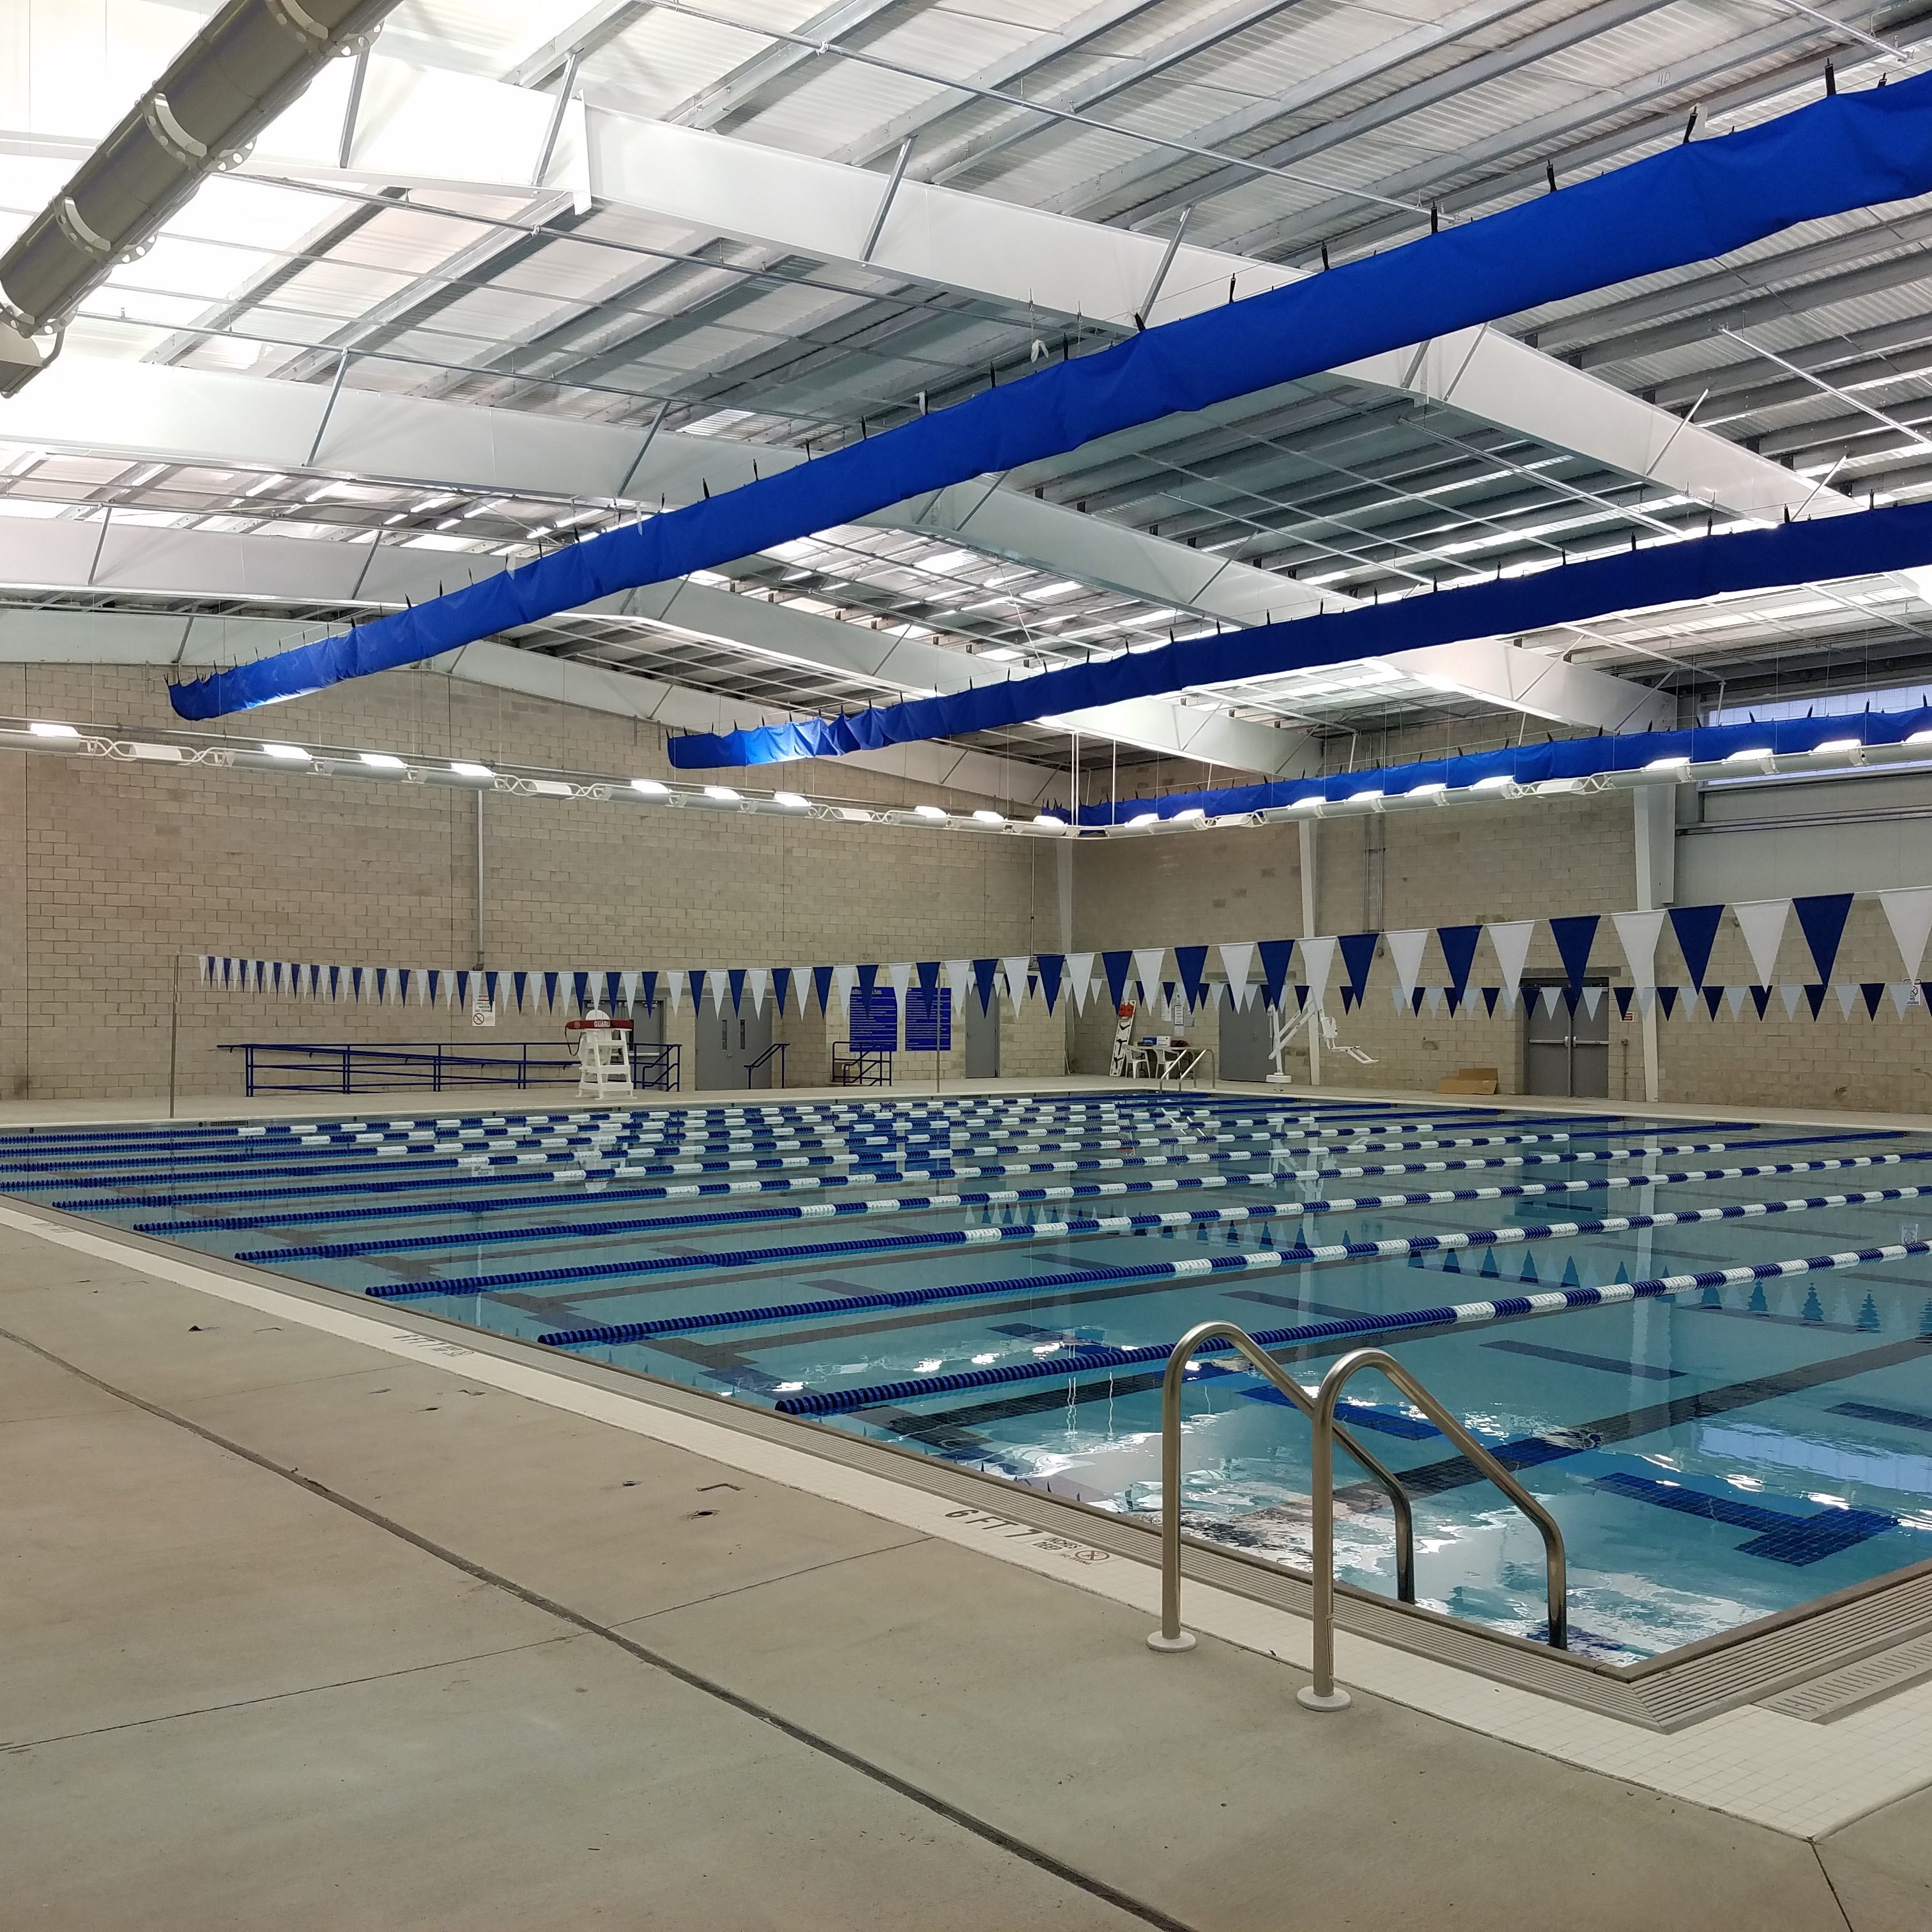 Just add swimmers!